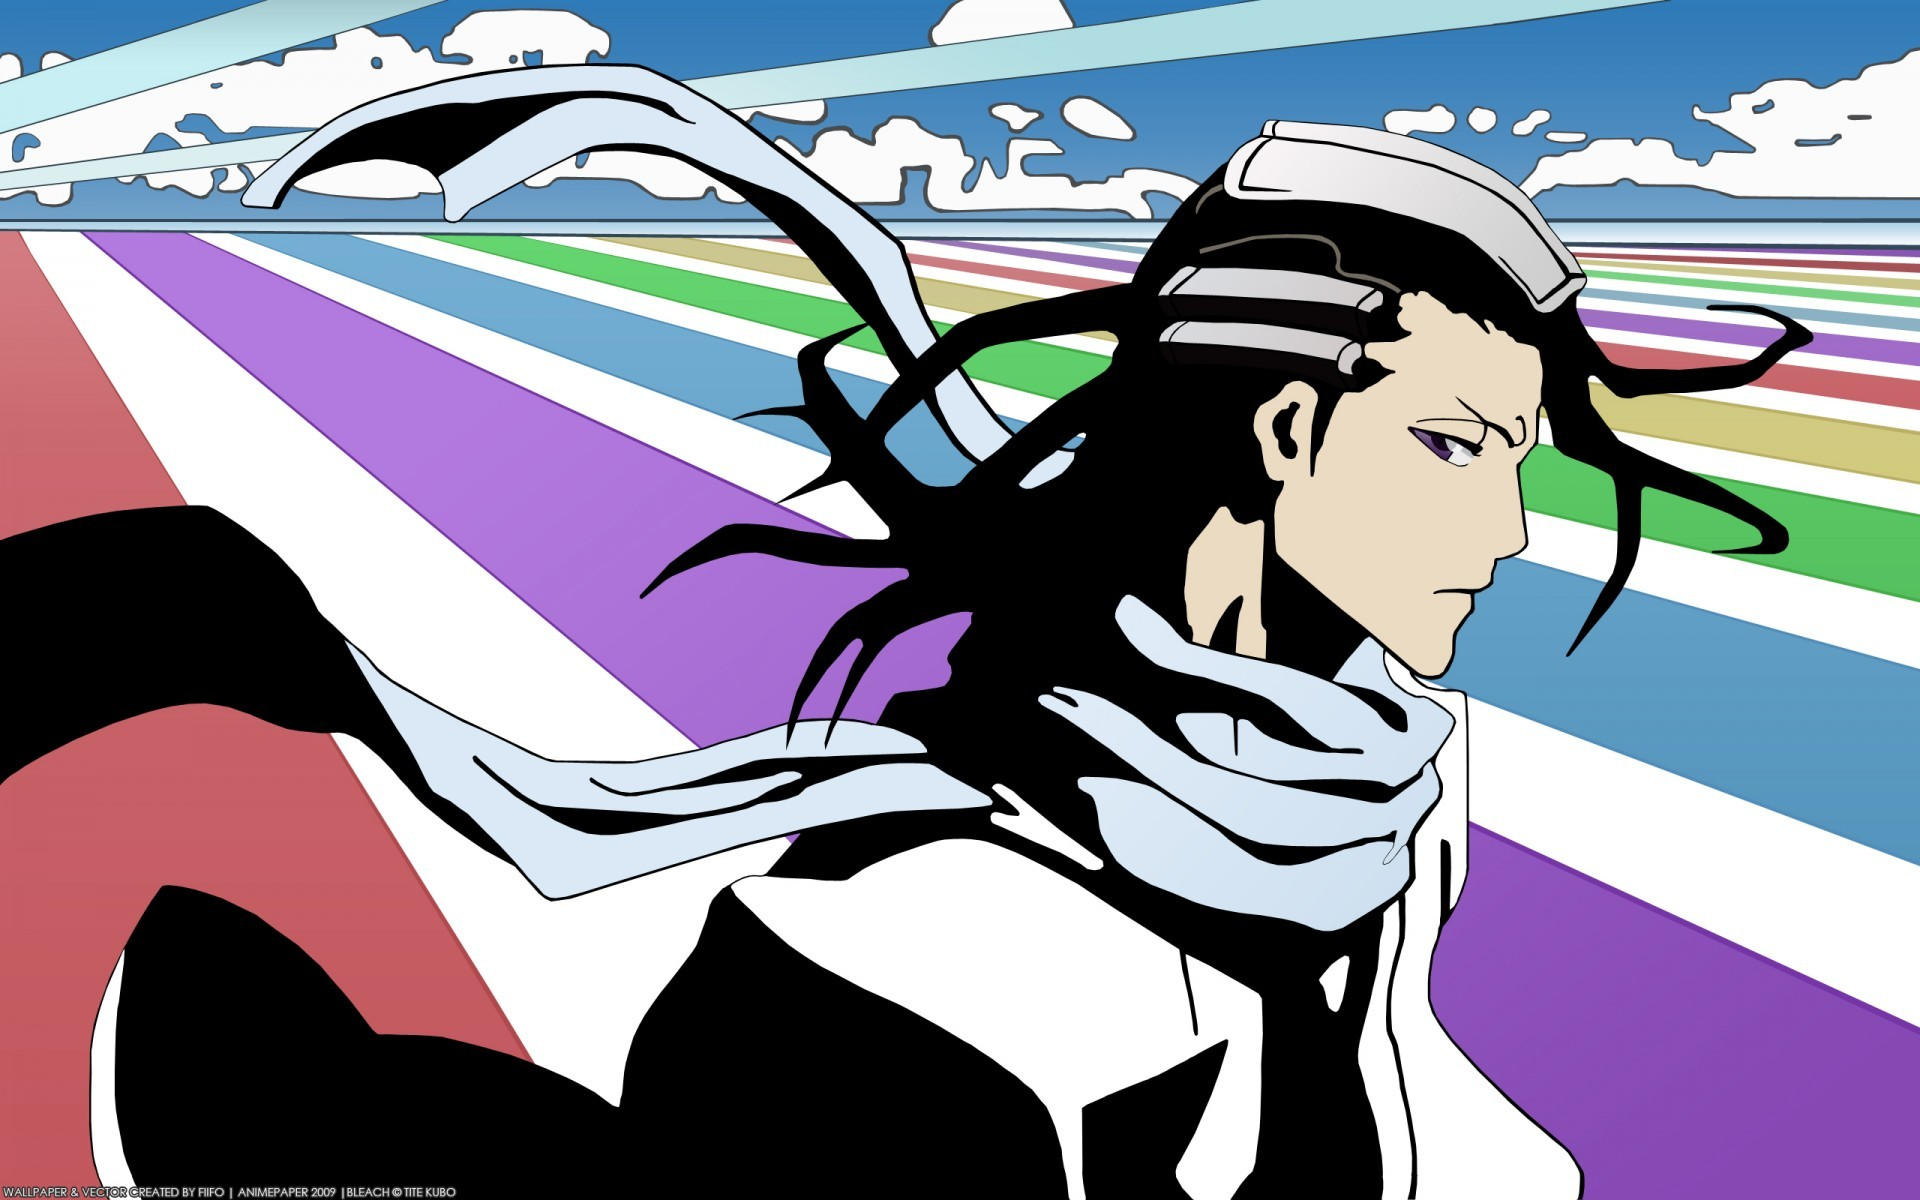 Res: 1920x1200, Bleach Forever images Kuchiki Byakuya HD wallpaper and background photos